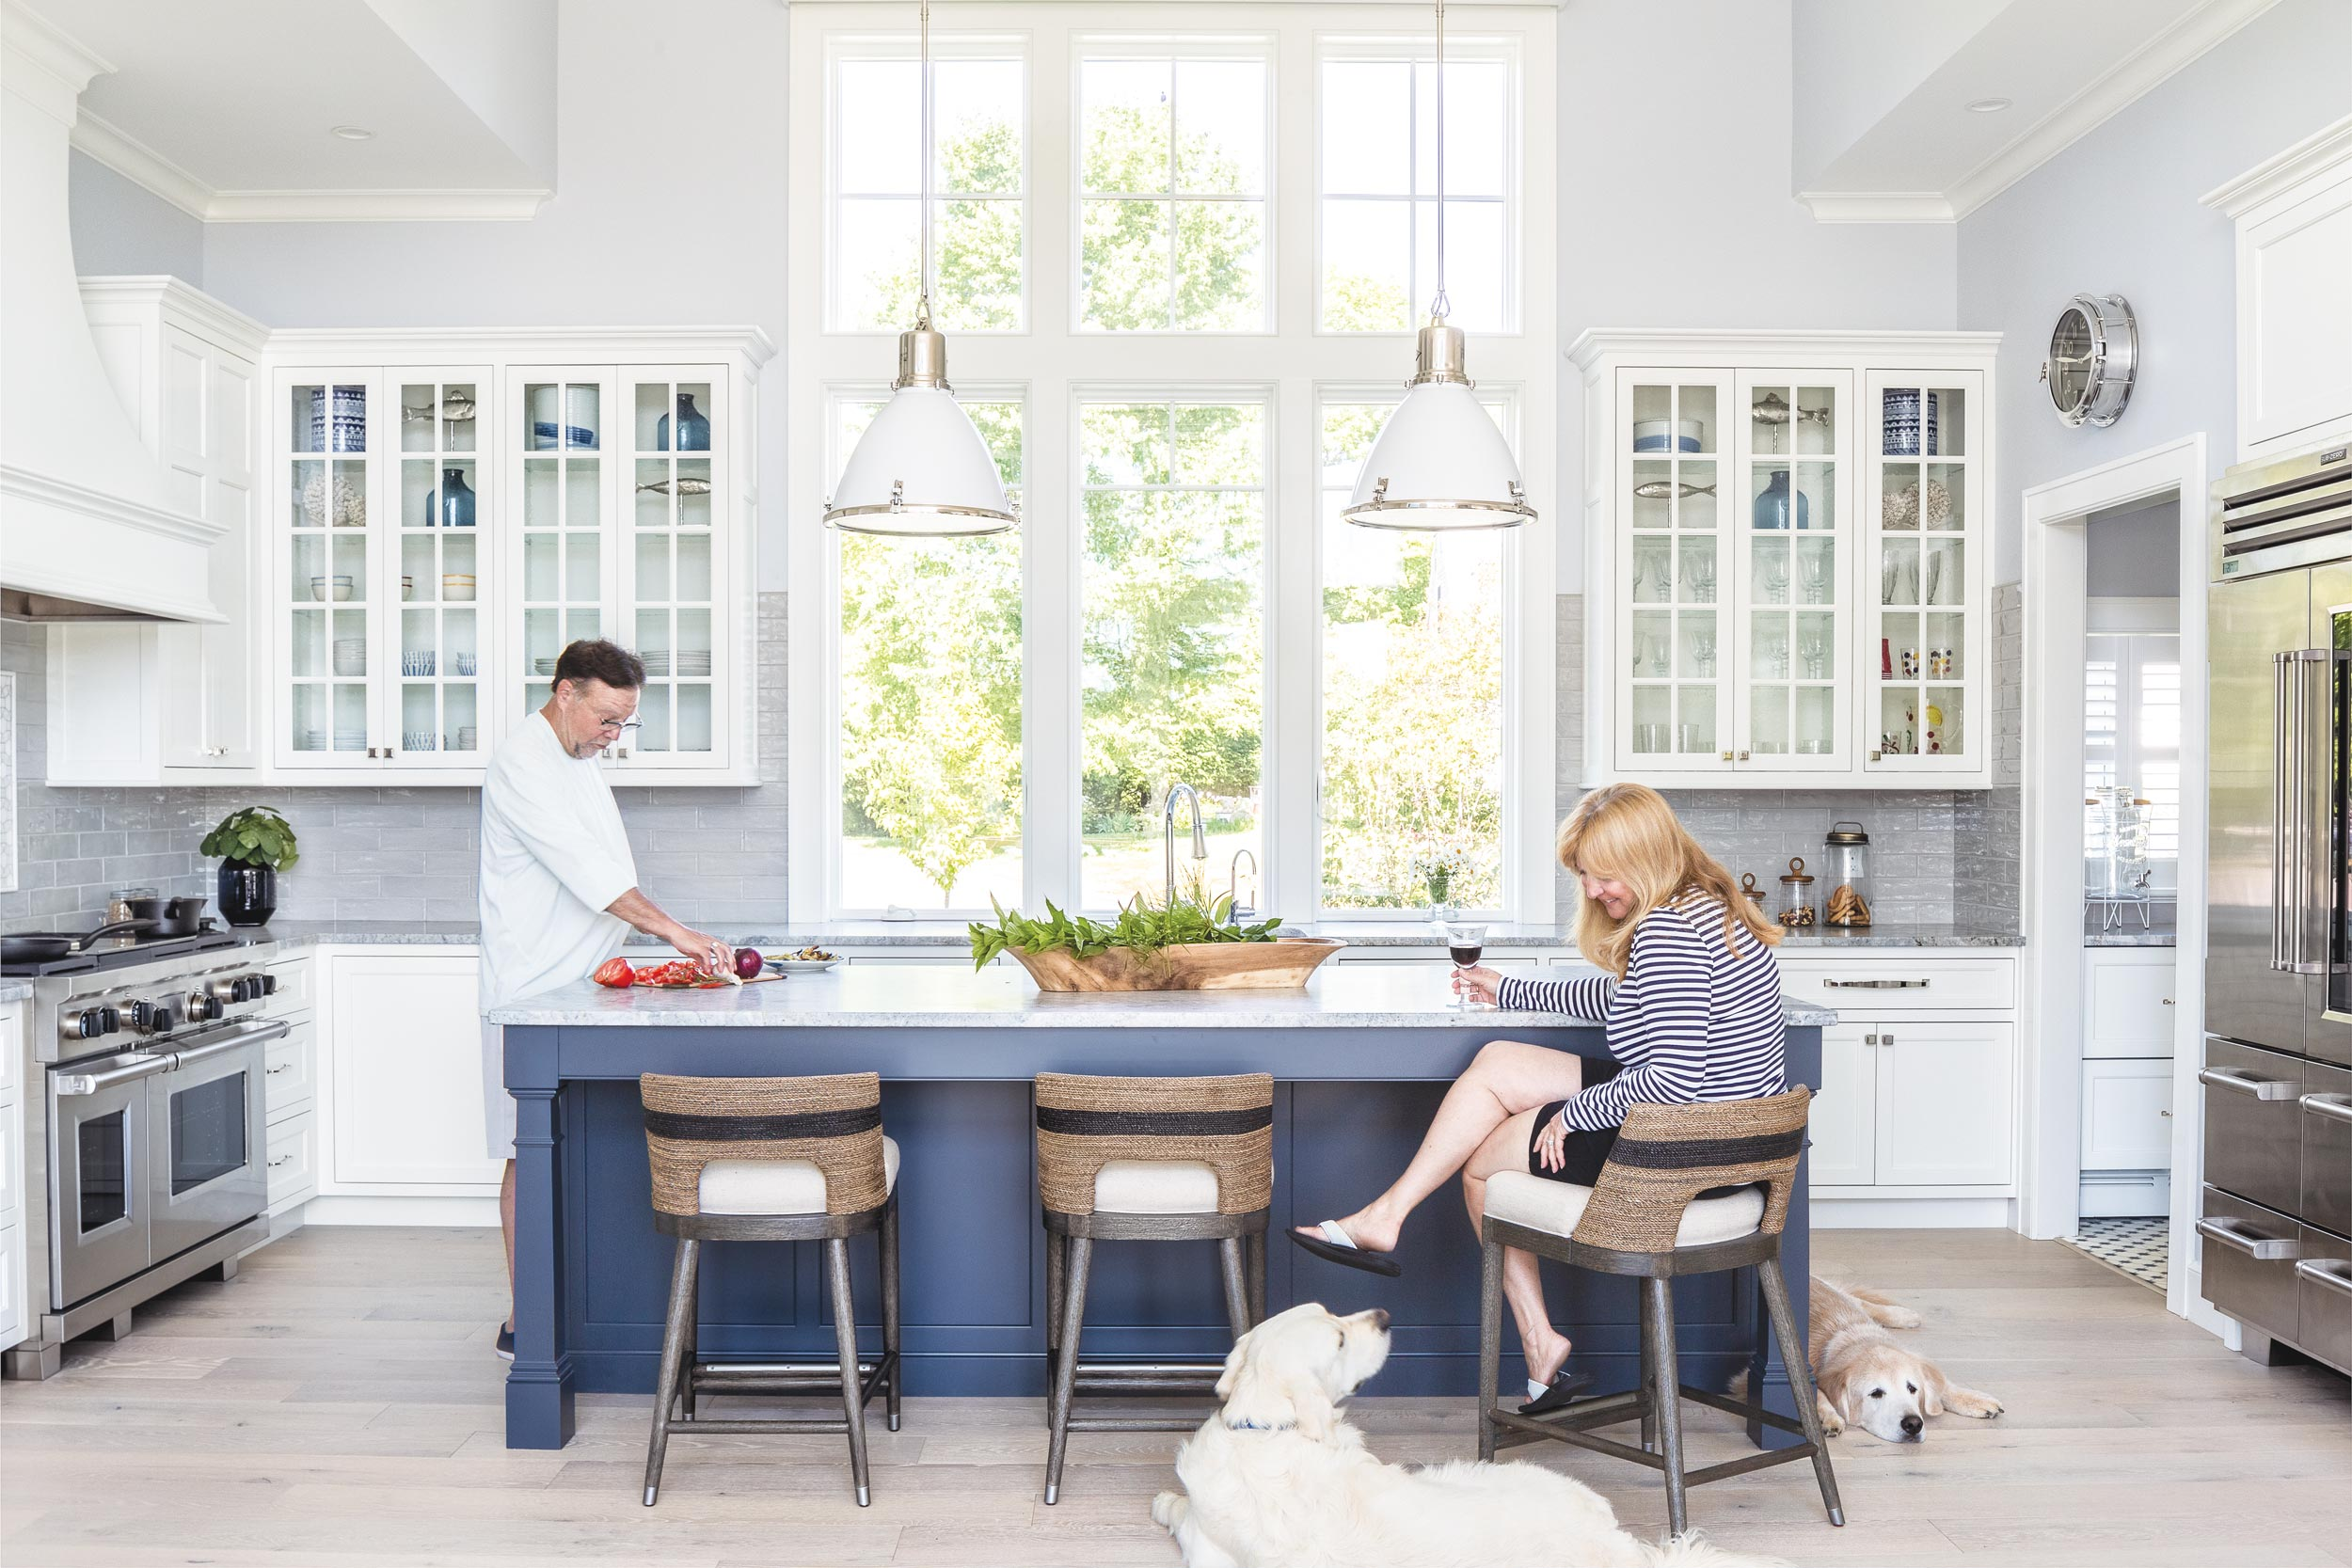 """Cooking for four. Ample kitchen space allows plenty of room to enjoy """"the slow life,"""" as Ms. Nash calls it, with their beloved retrievers Chappie and Samson."""